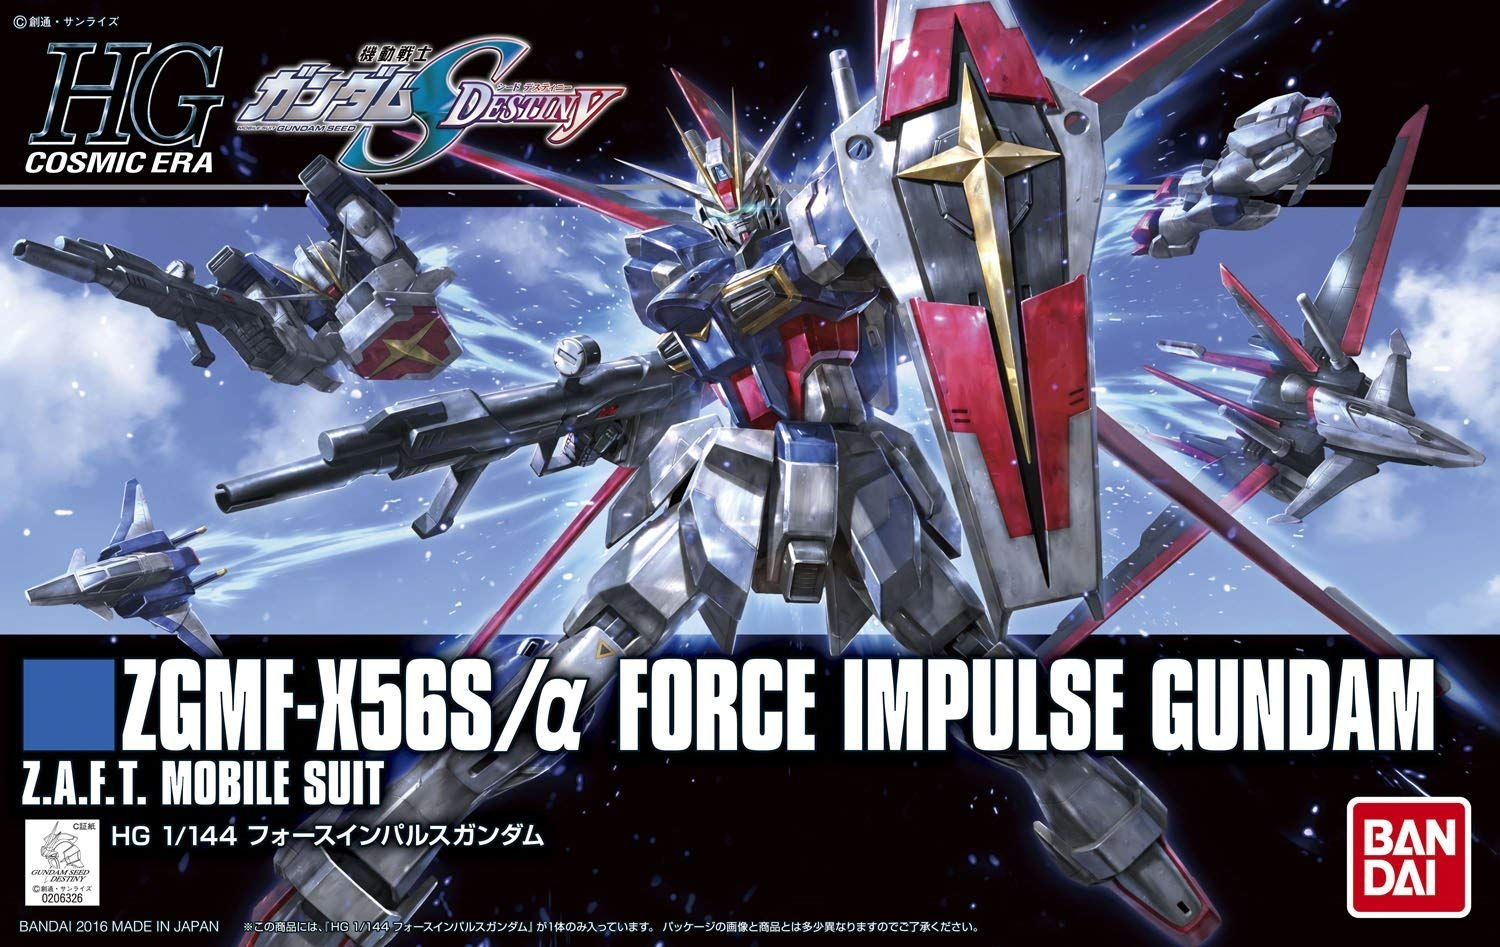 HGCE 198 REVIVE 1/144 ZGMF-X56S/α フォースインパルスガンダム [Force Impulse Gundam] 0206326 5059241 4573102592415